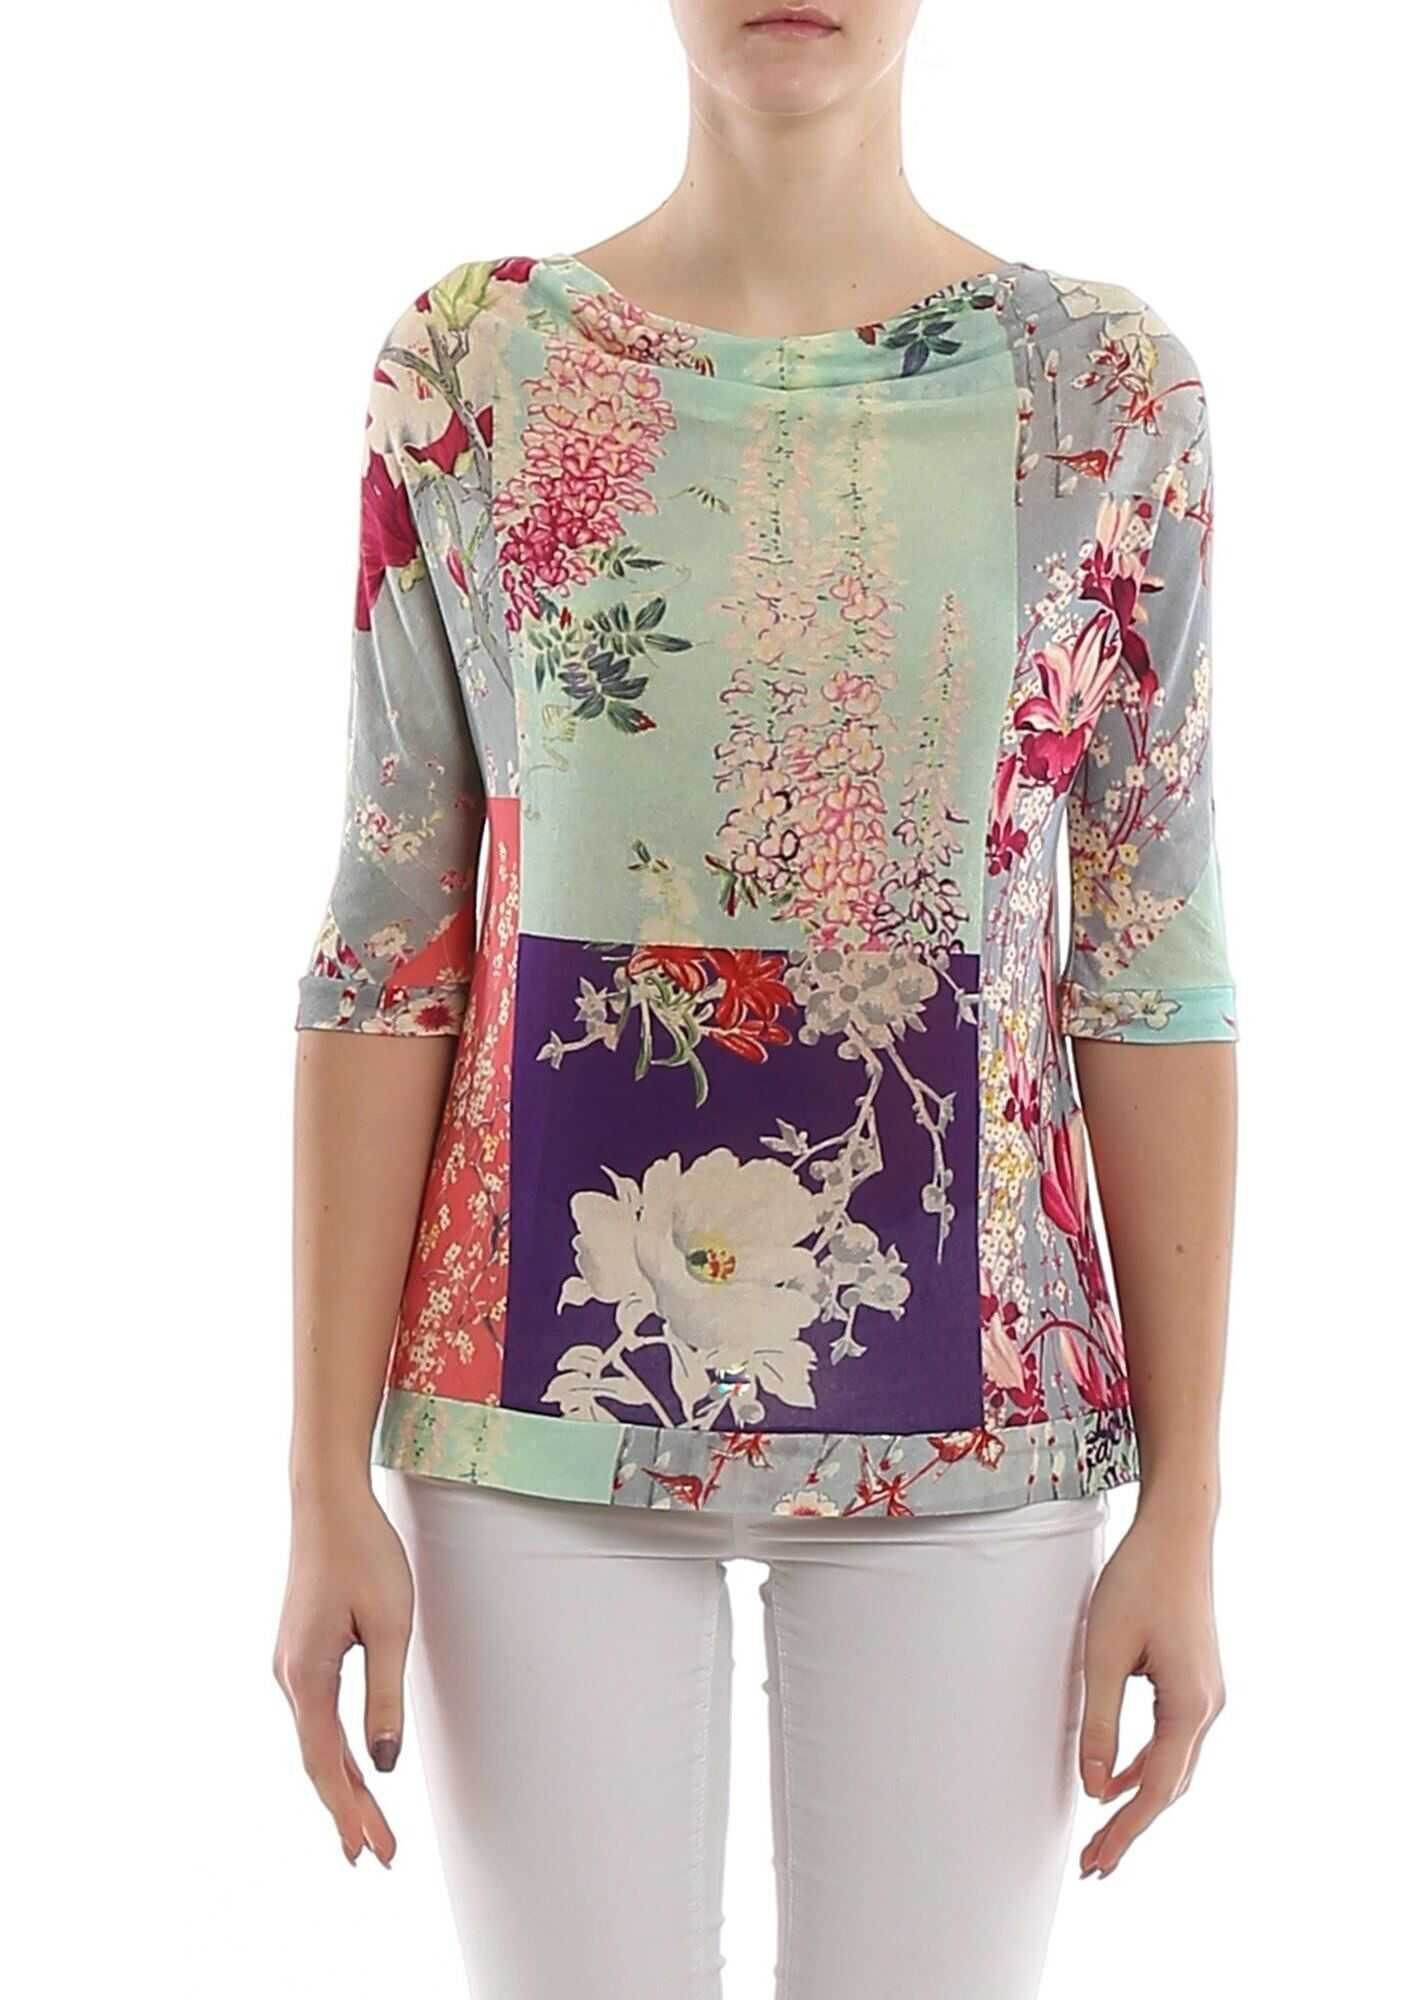 ETRO Patterned Knitted Viscose Blouse Multi